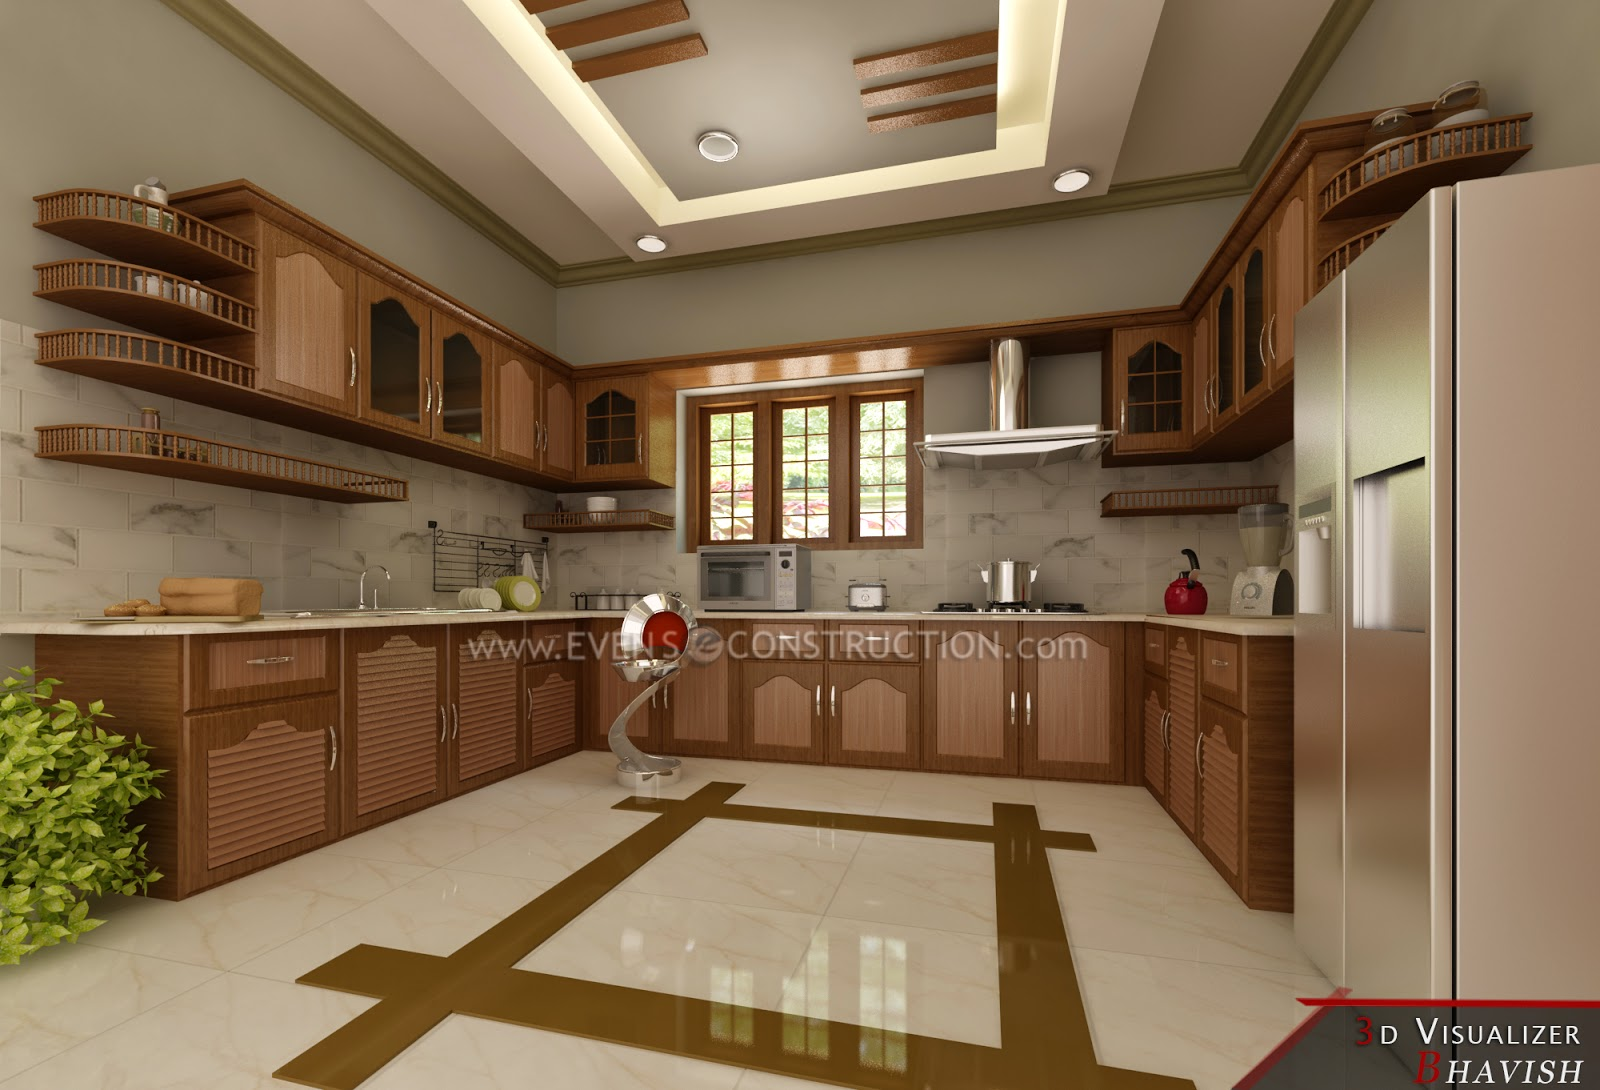 Mostly We Are Thinking About Kitchen That Makes You Feel Better And Relax  More Comfortable While Preparing Your Foods. Here Is Some Modern Ideas And  Designs ... Part 74